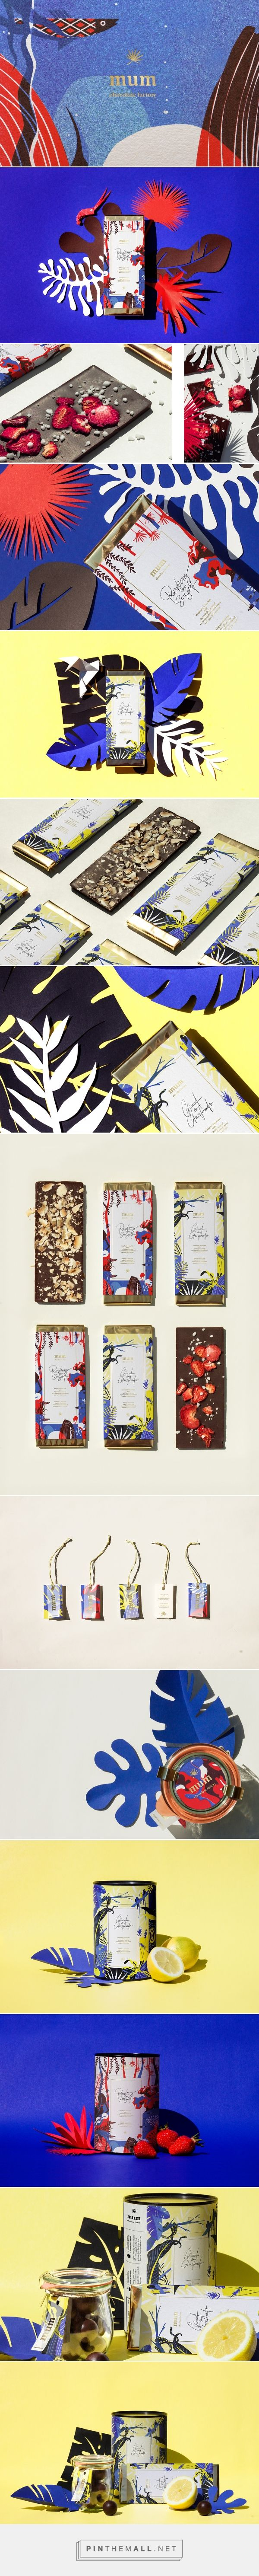 mum chocolate packaging design by Alessia Sistori